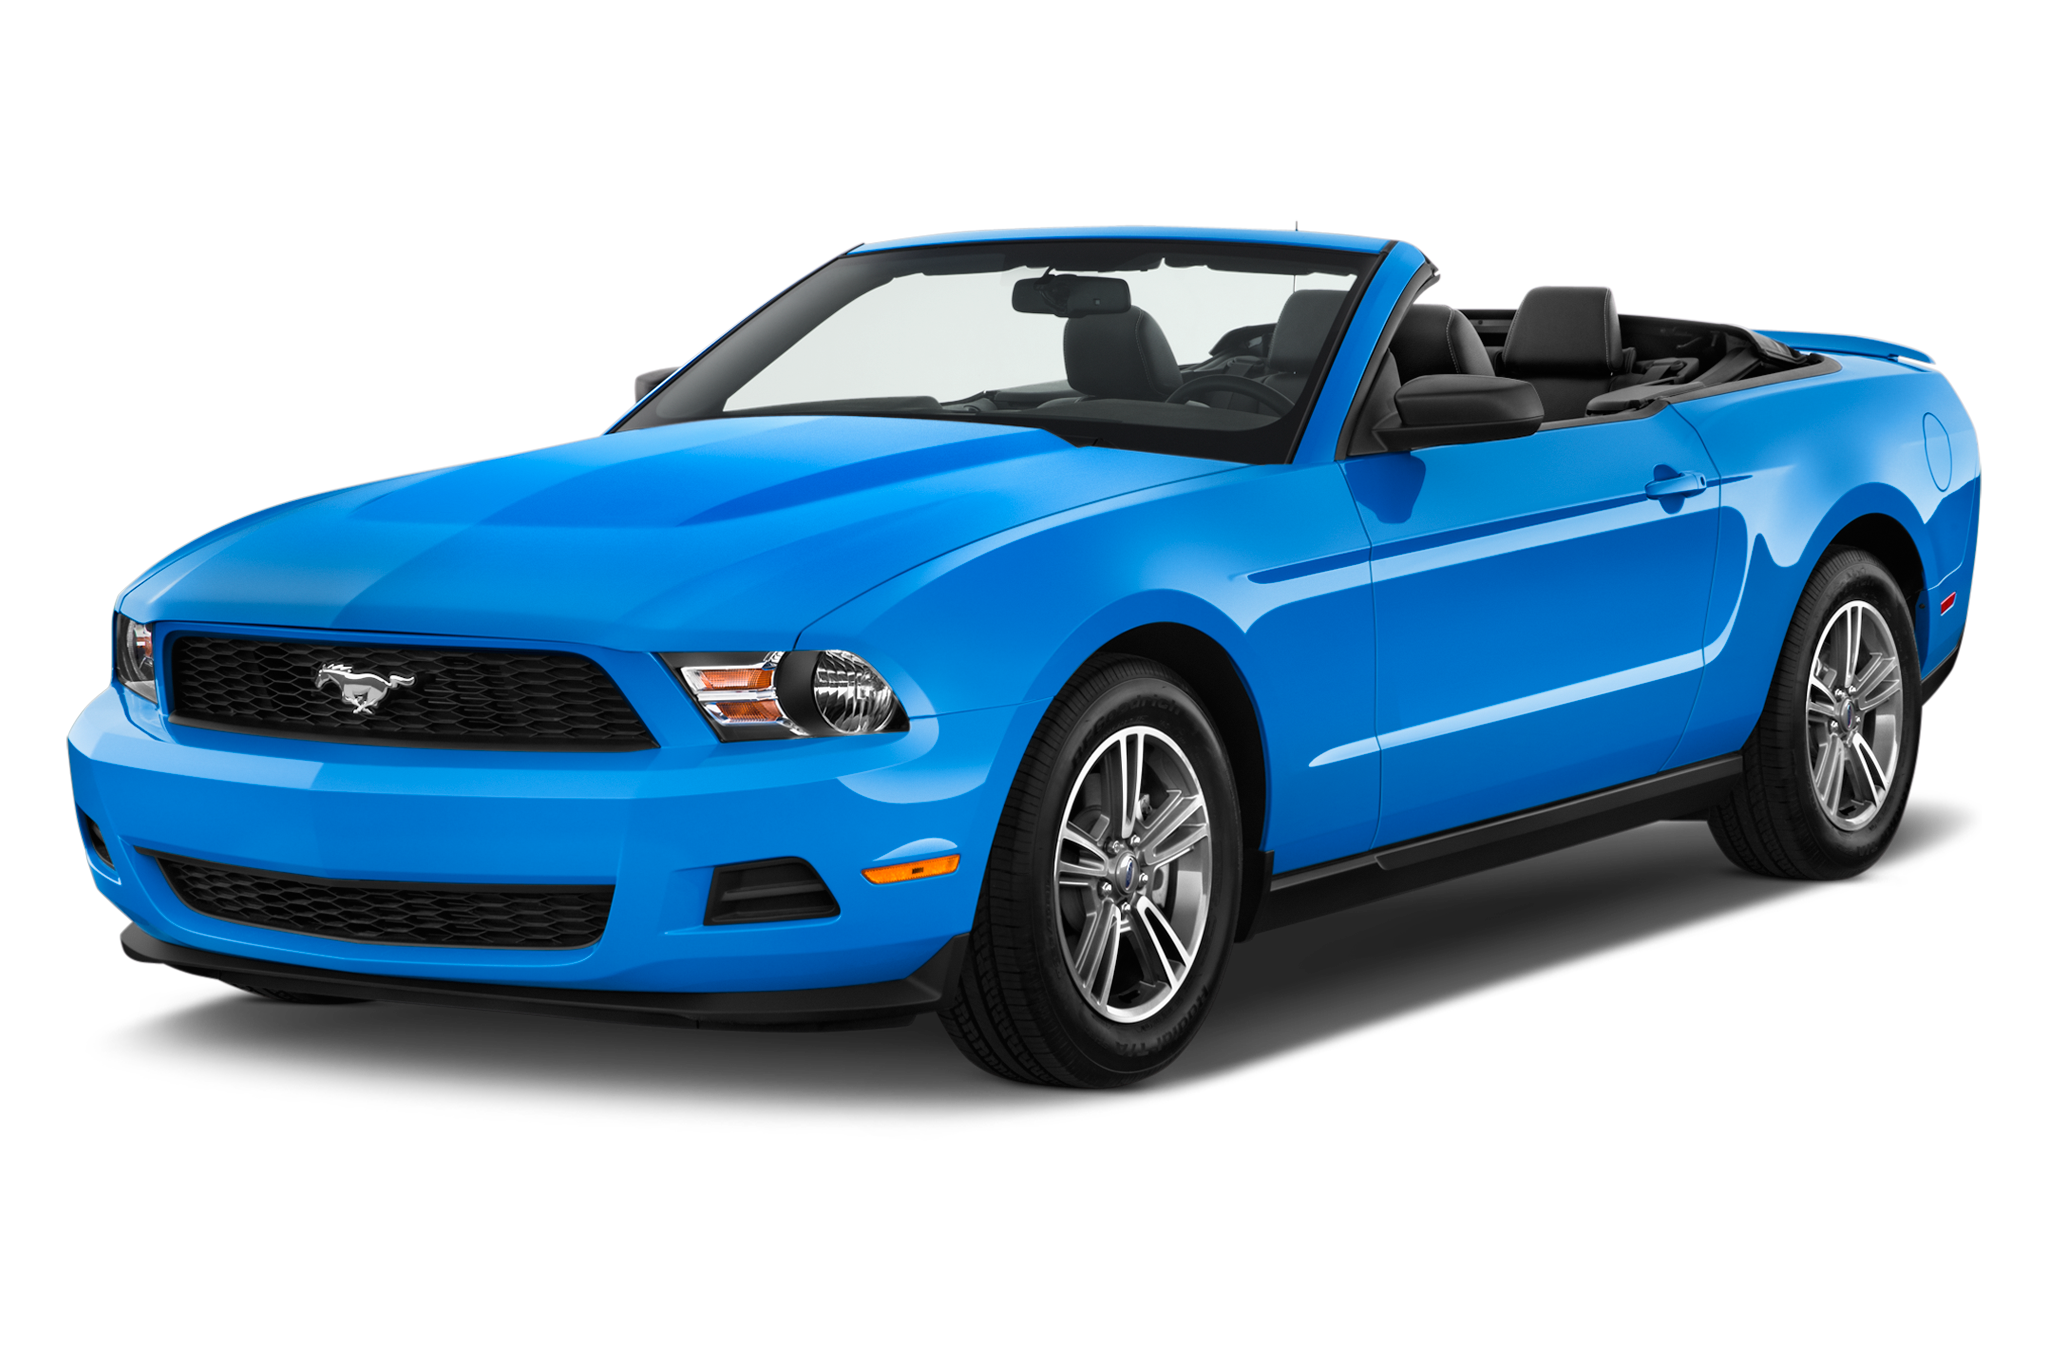 2012 ford mustang v6 convertible specs and features msn autos. Black Bedroom Furniture Sets. Home Design Ideas